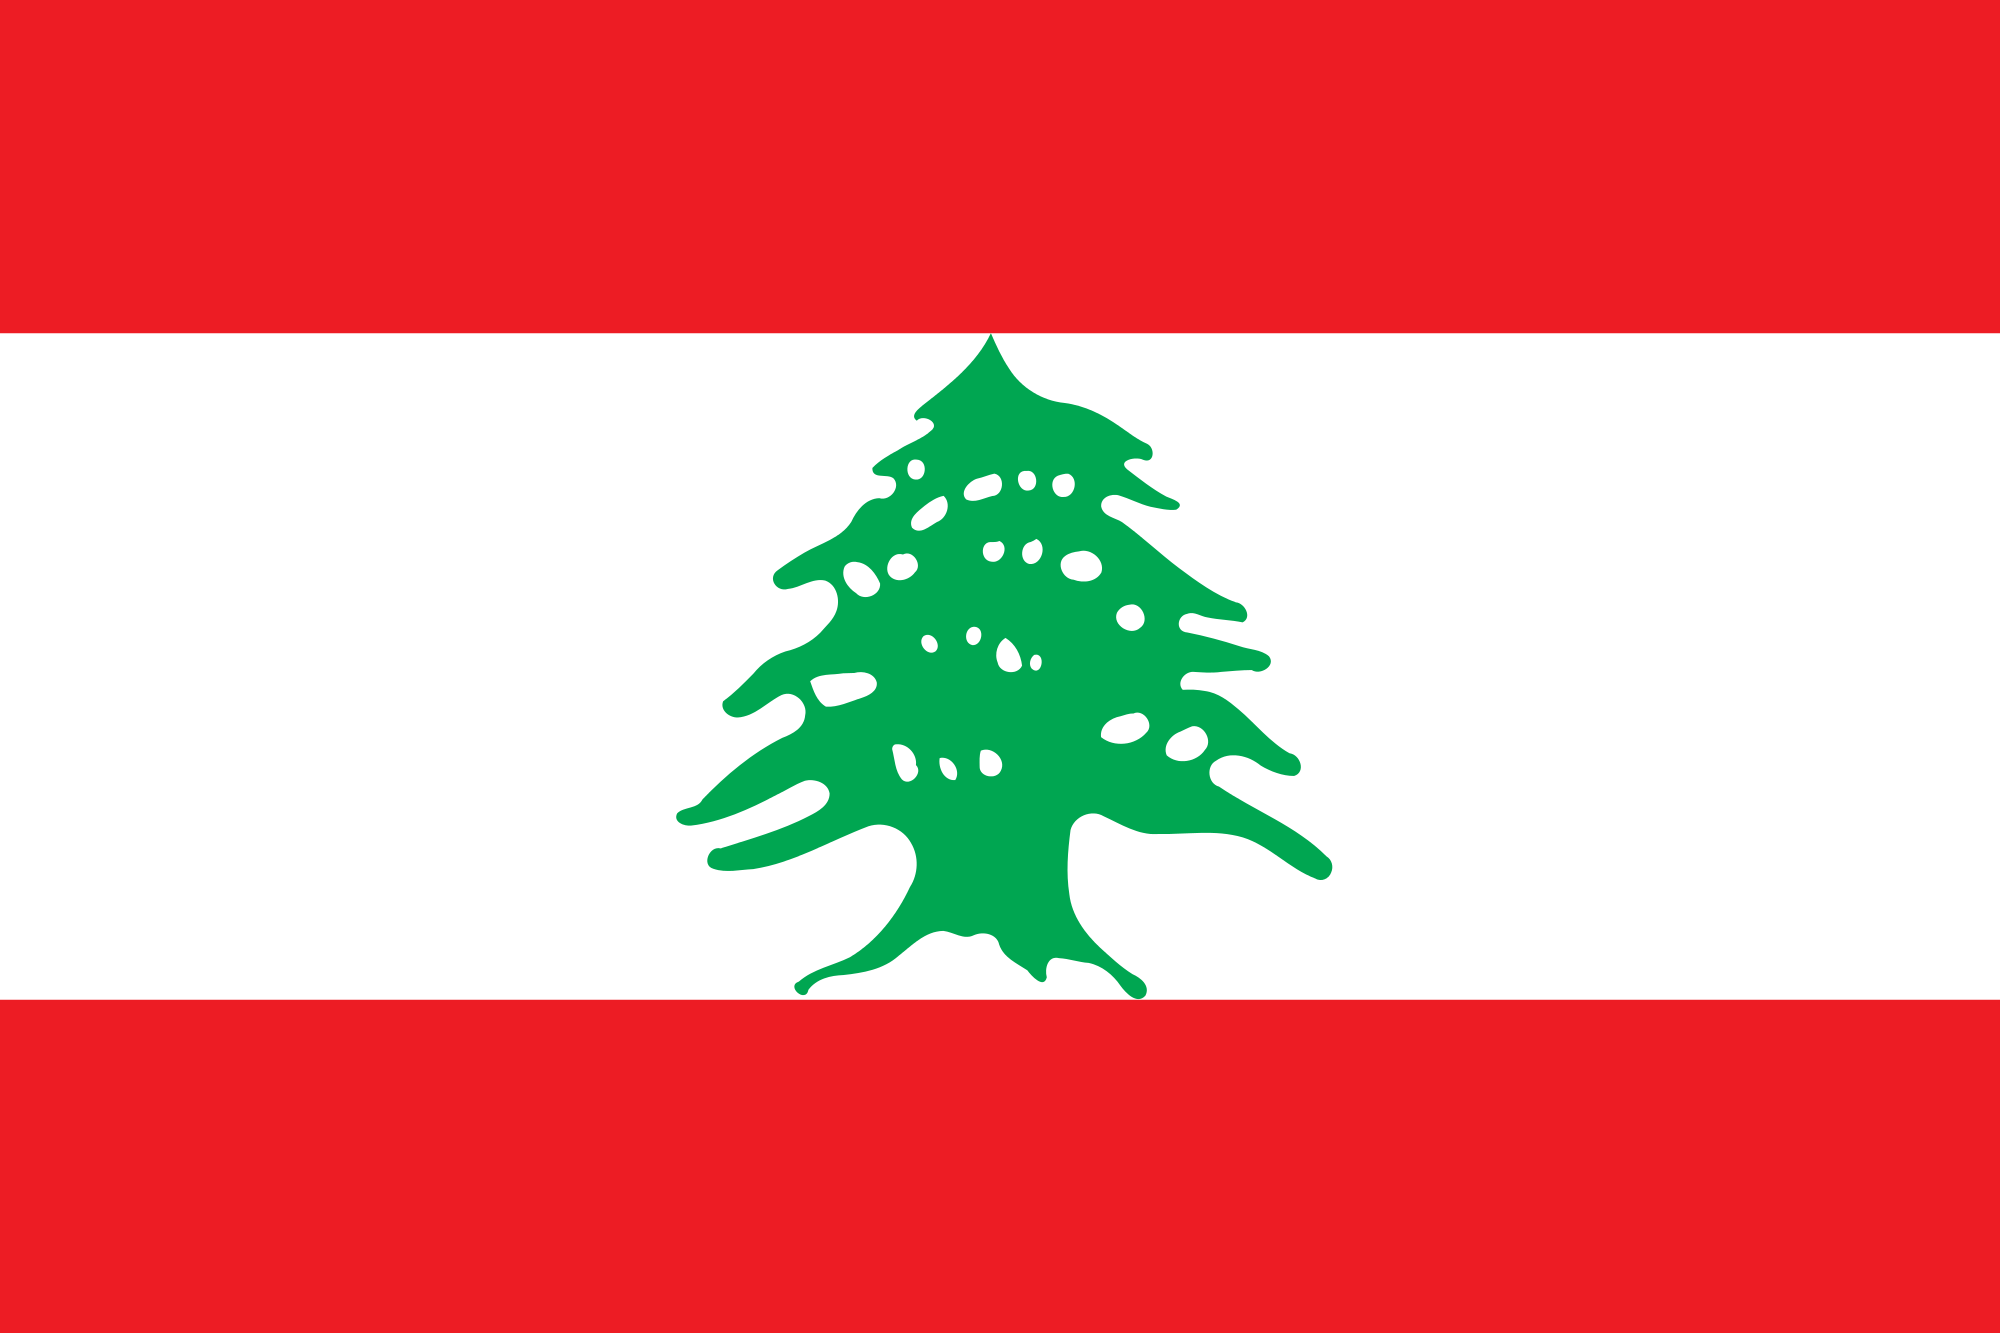 Can Lebanon Ever Rid Itself of Hezbollah?, Can Lebanon Ever Rid Itself of Hezbollah?